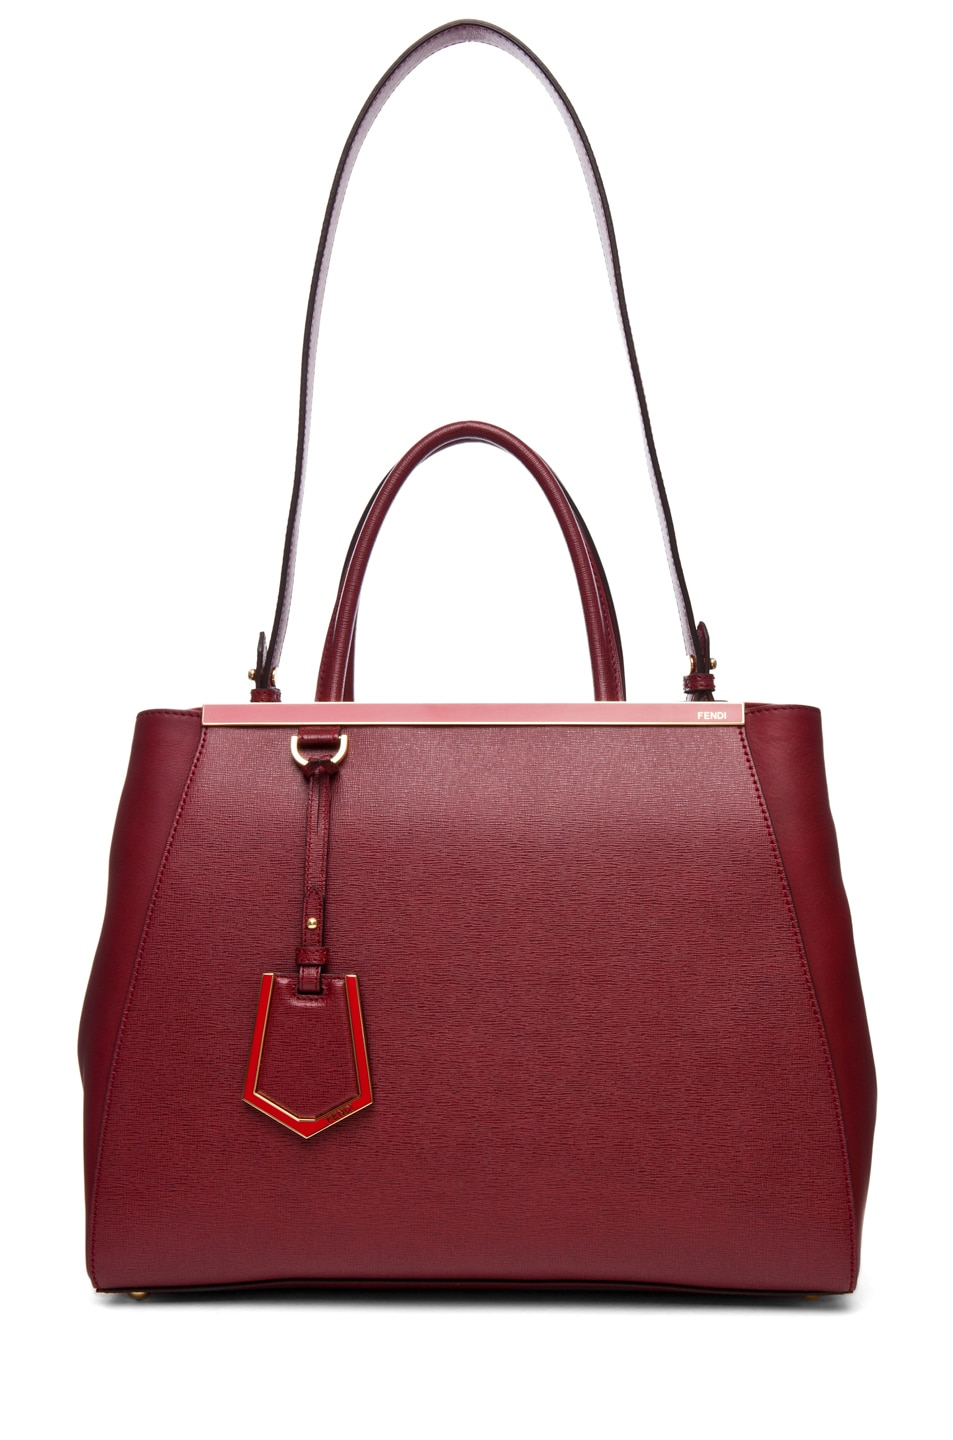 Image 5 of Fendi Medium Shopper Bag in Dark Cherry